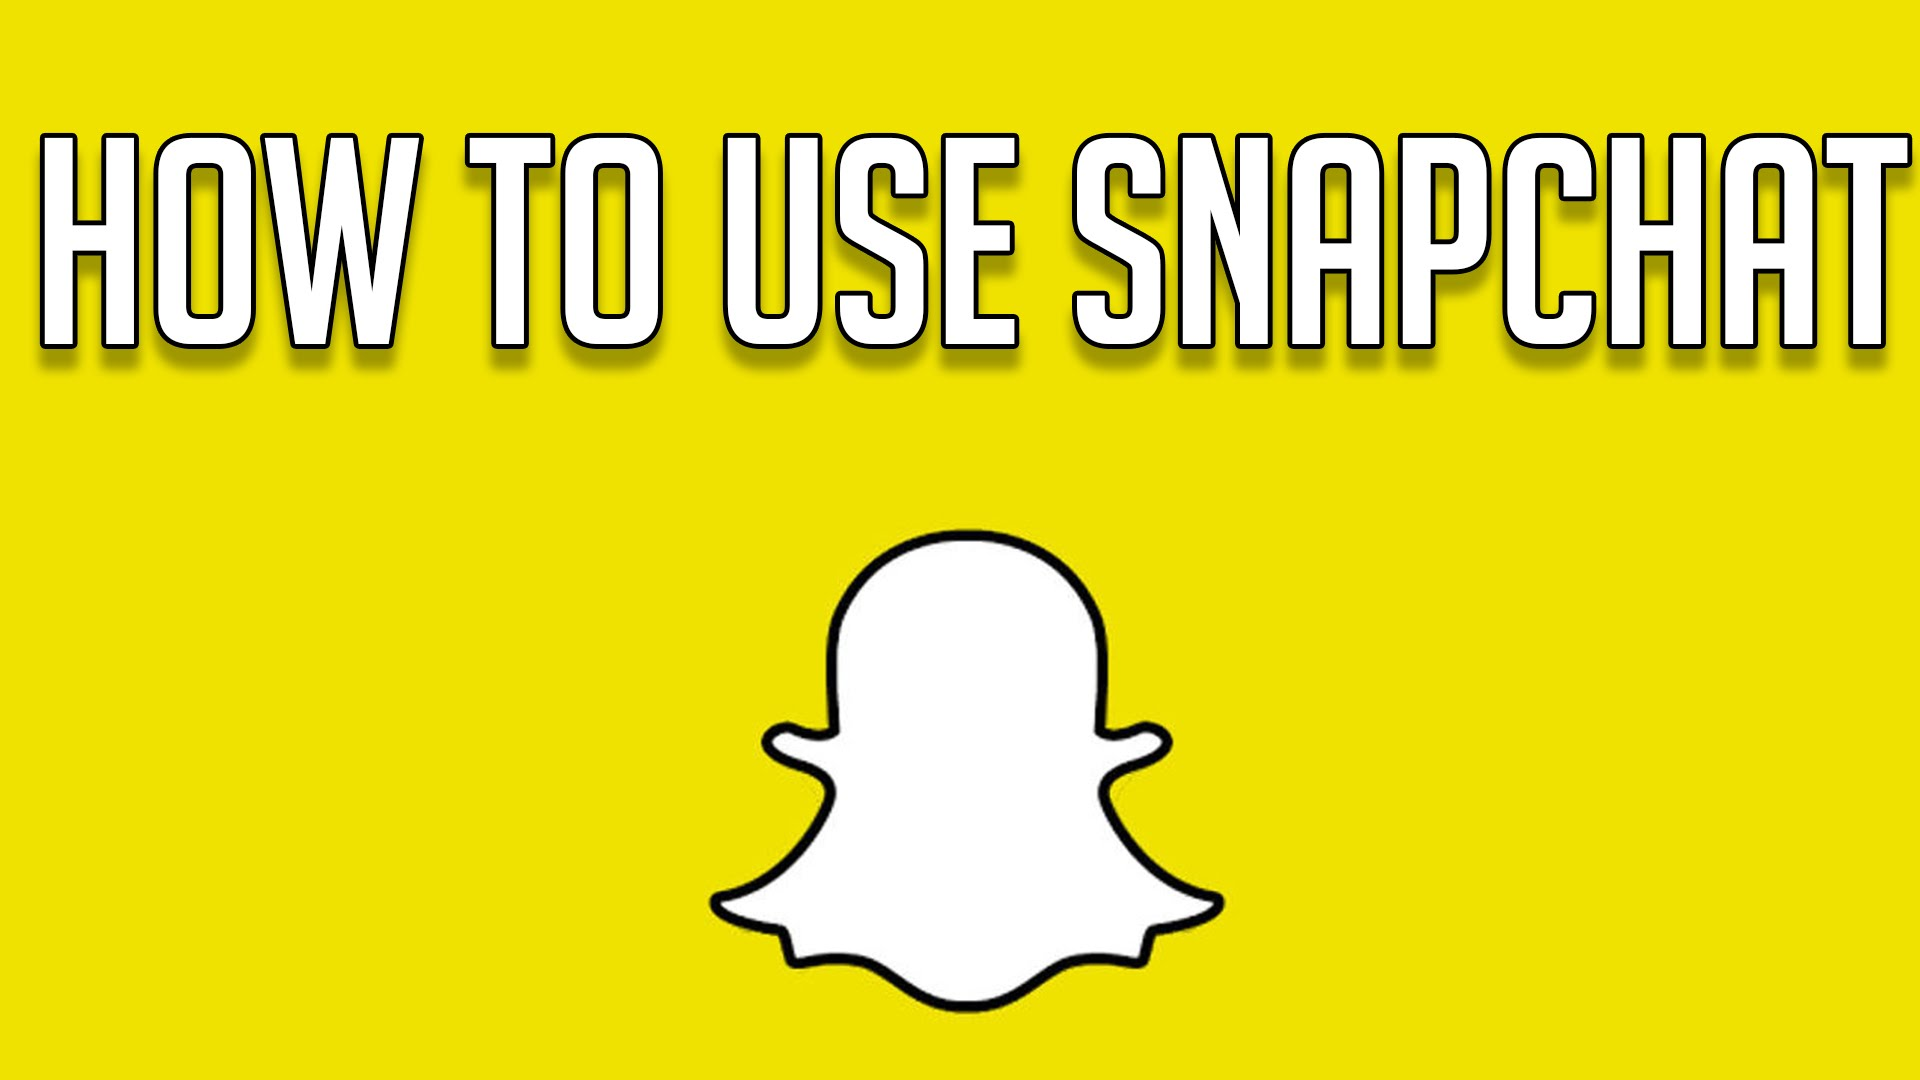 HOW TO USE SNAPCHAT FOR BEGINNERS - Snapchat Tricks and ...